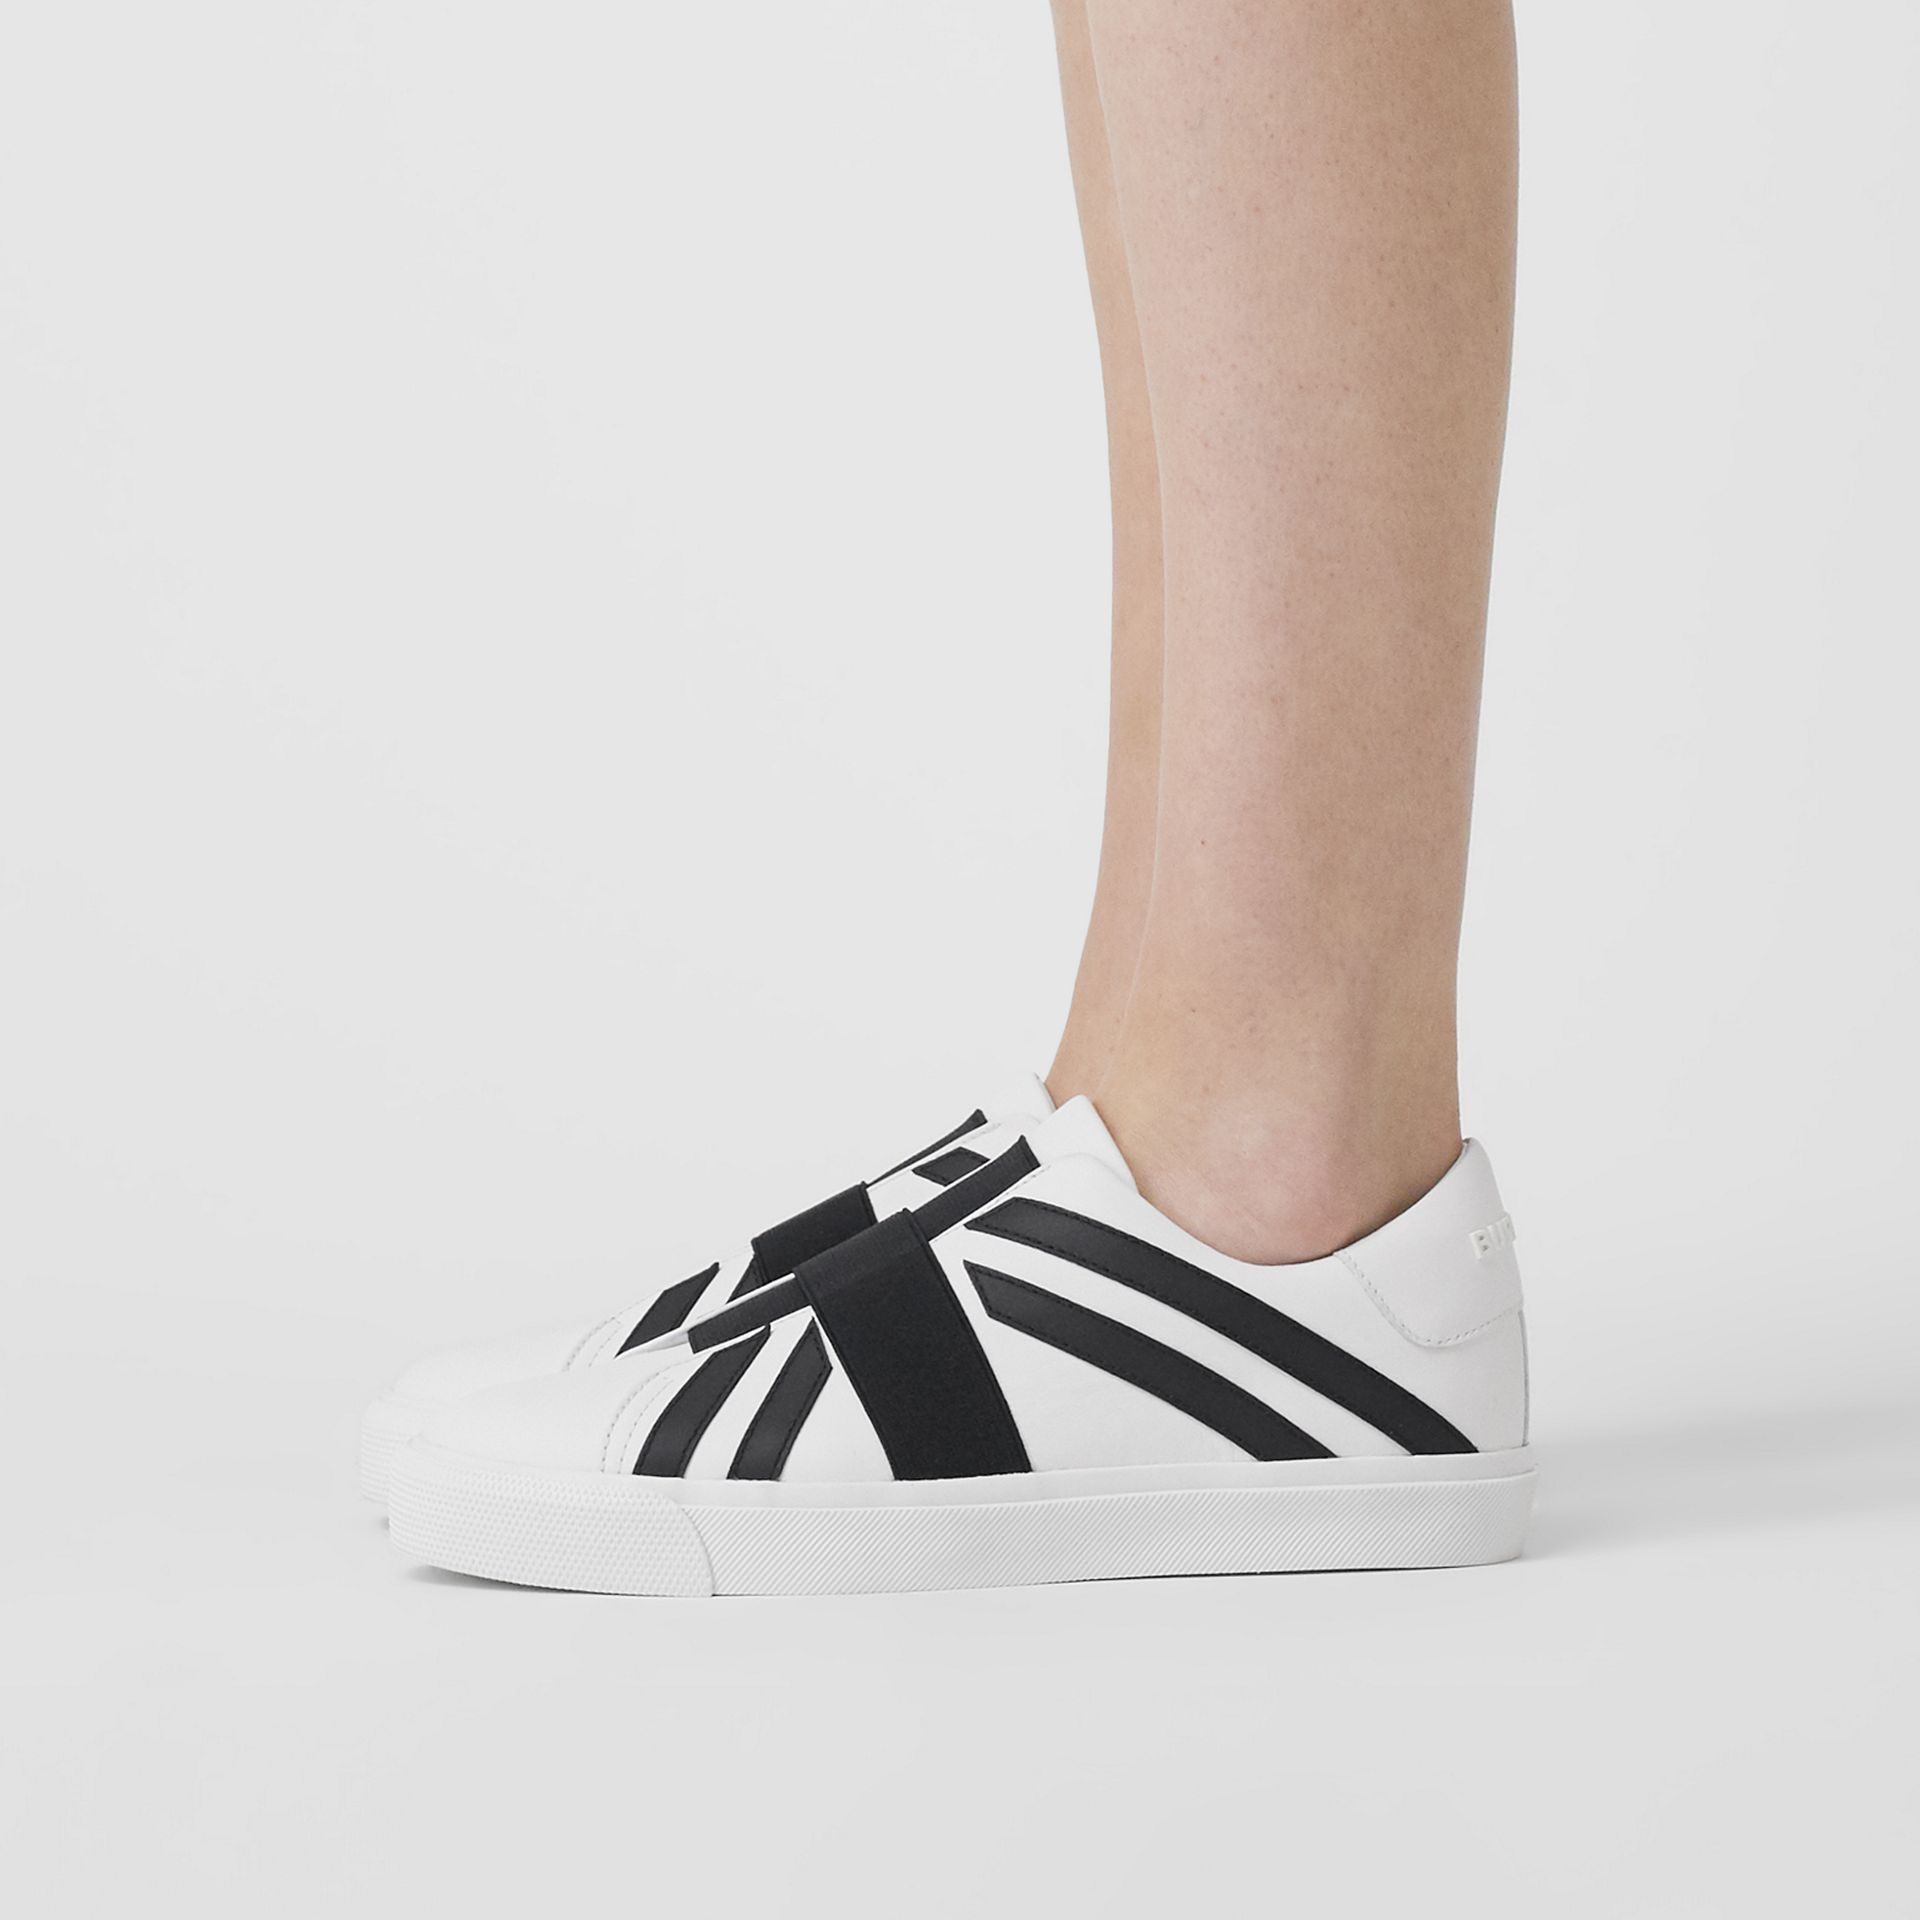 Union Jack Motif Slip-on Sneakers in Optic White/black - Women | Burberry Singapore - gallery image 2